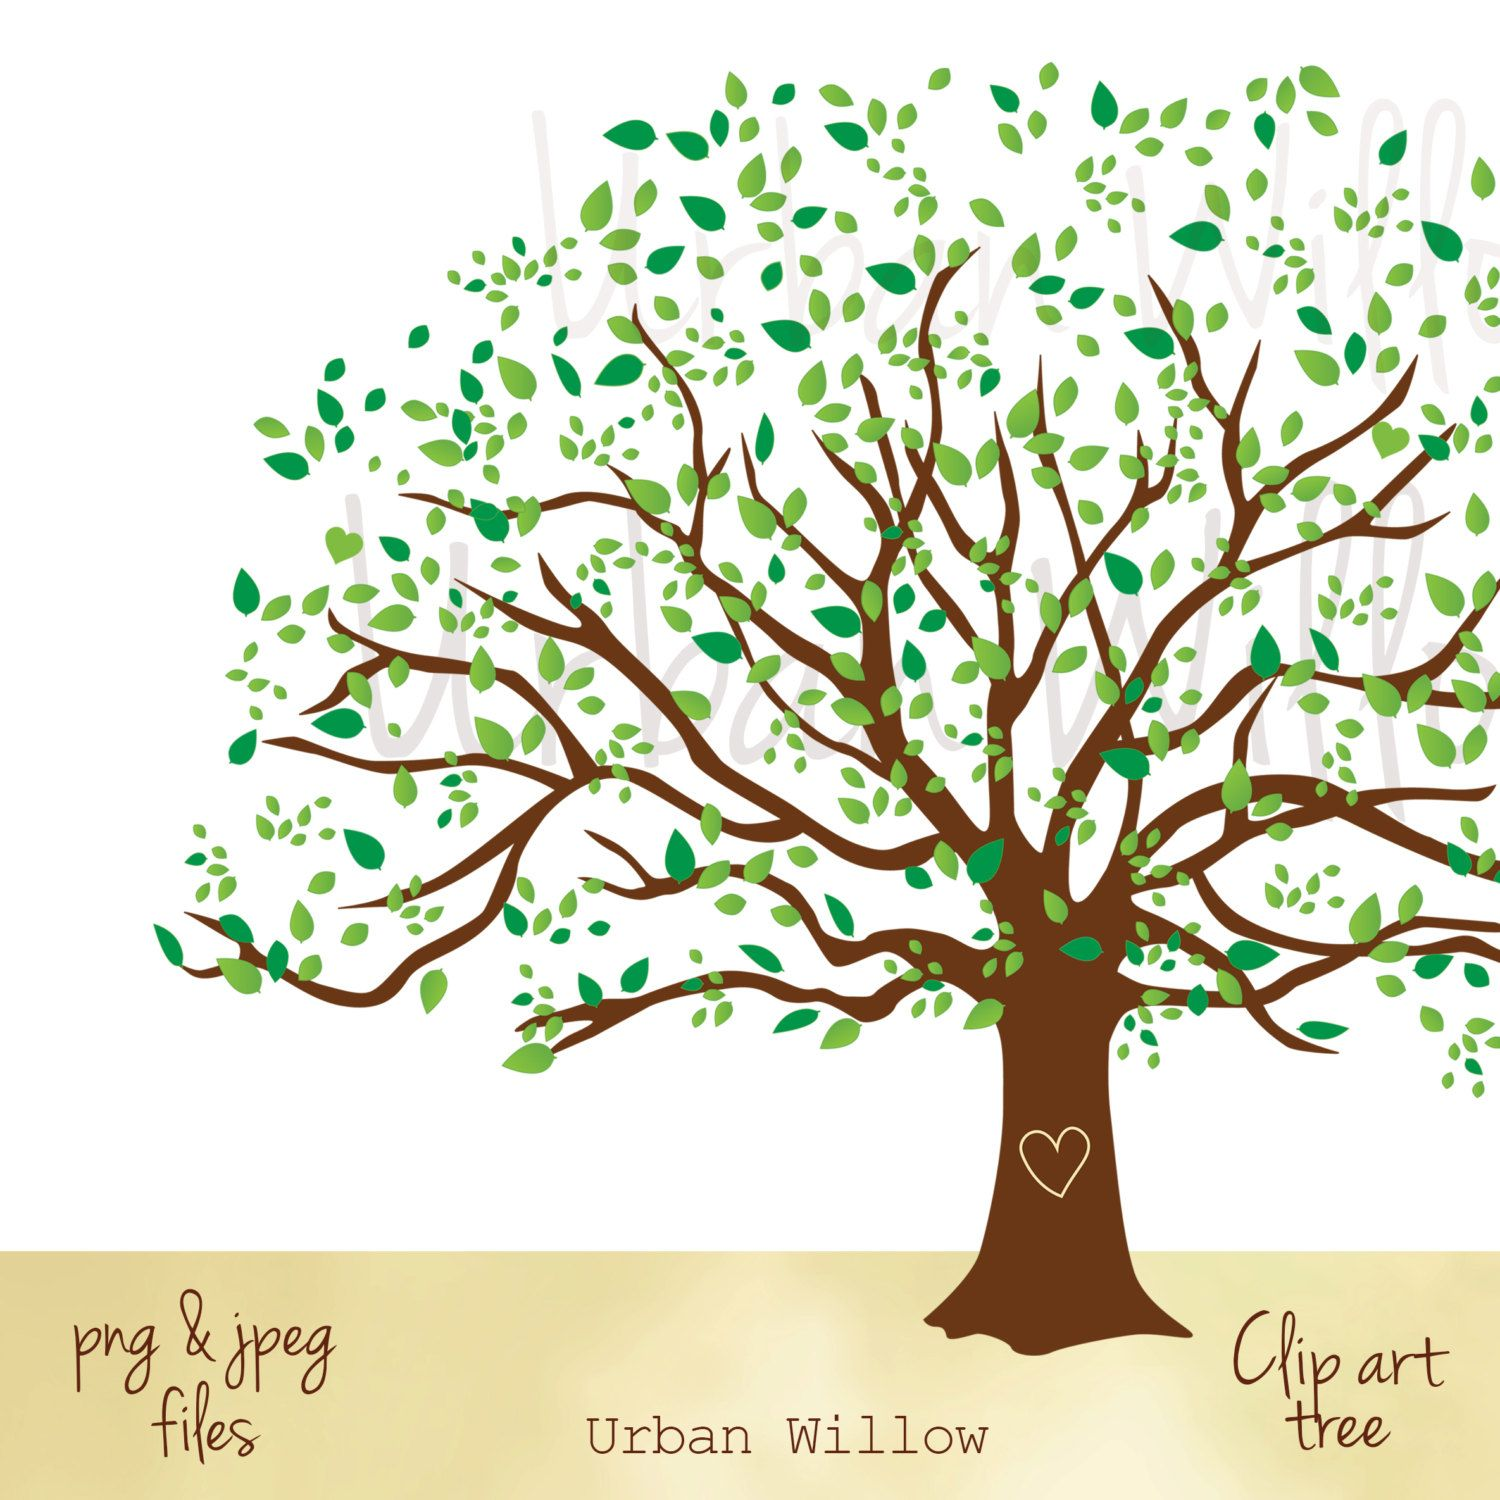 hight resolution of tree graphic flame tree willow tree wedding tree clipart green trees